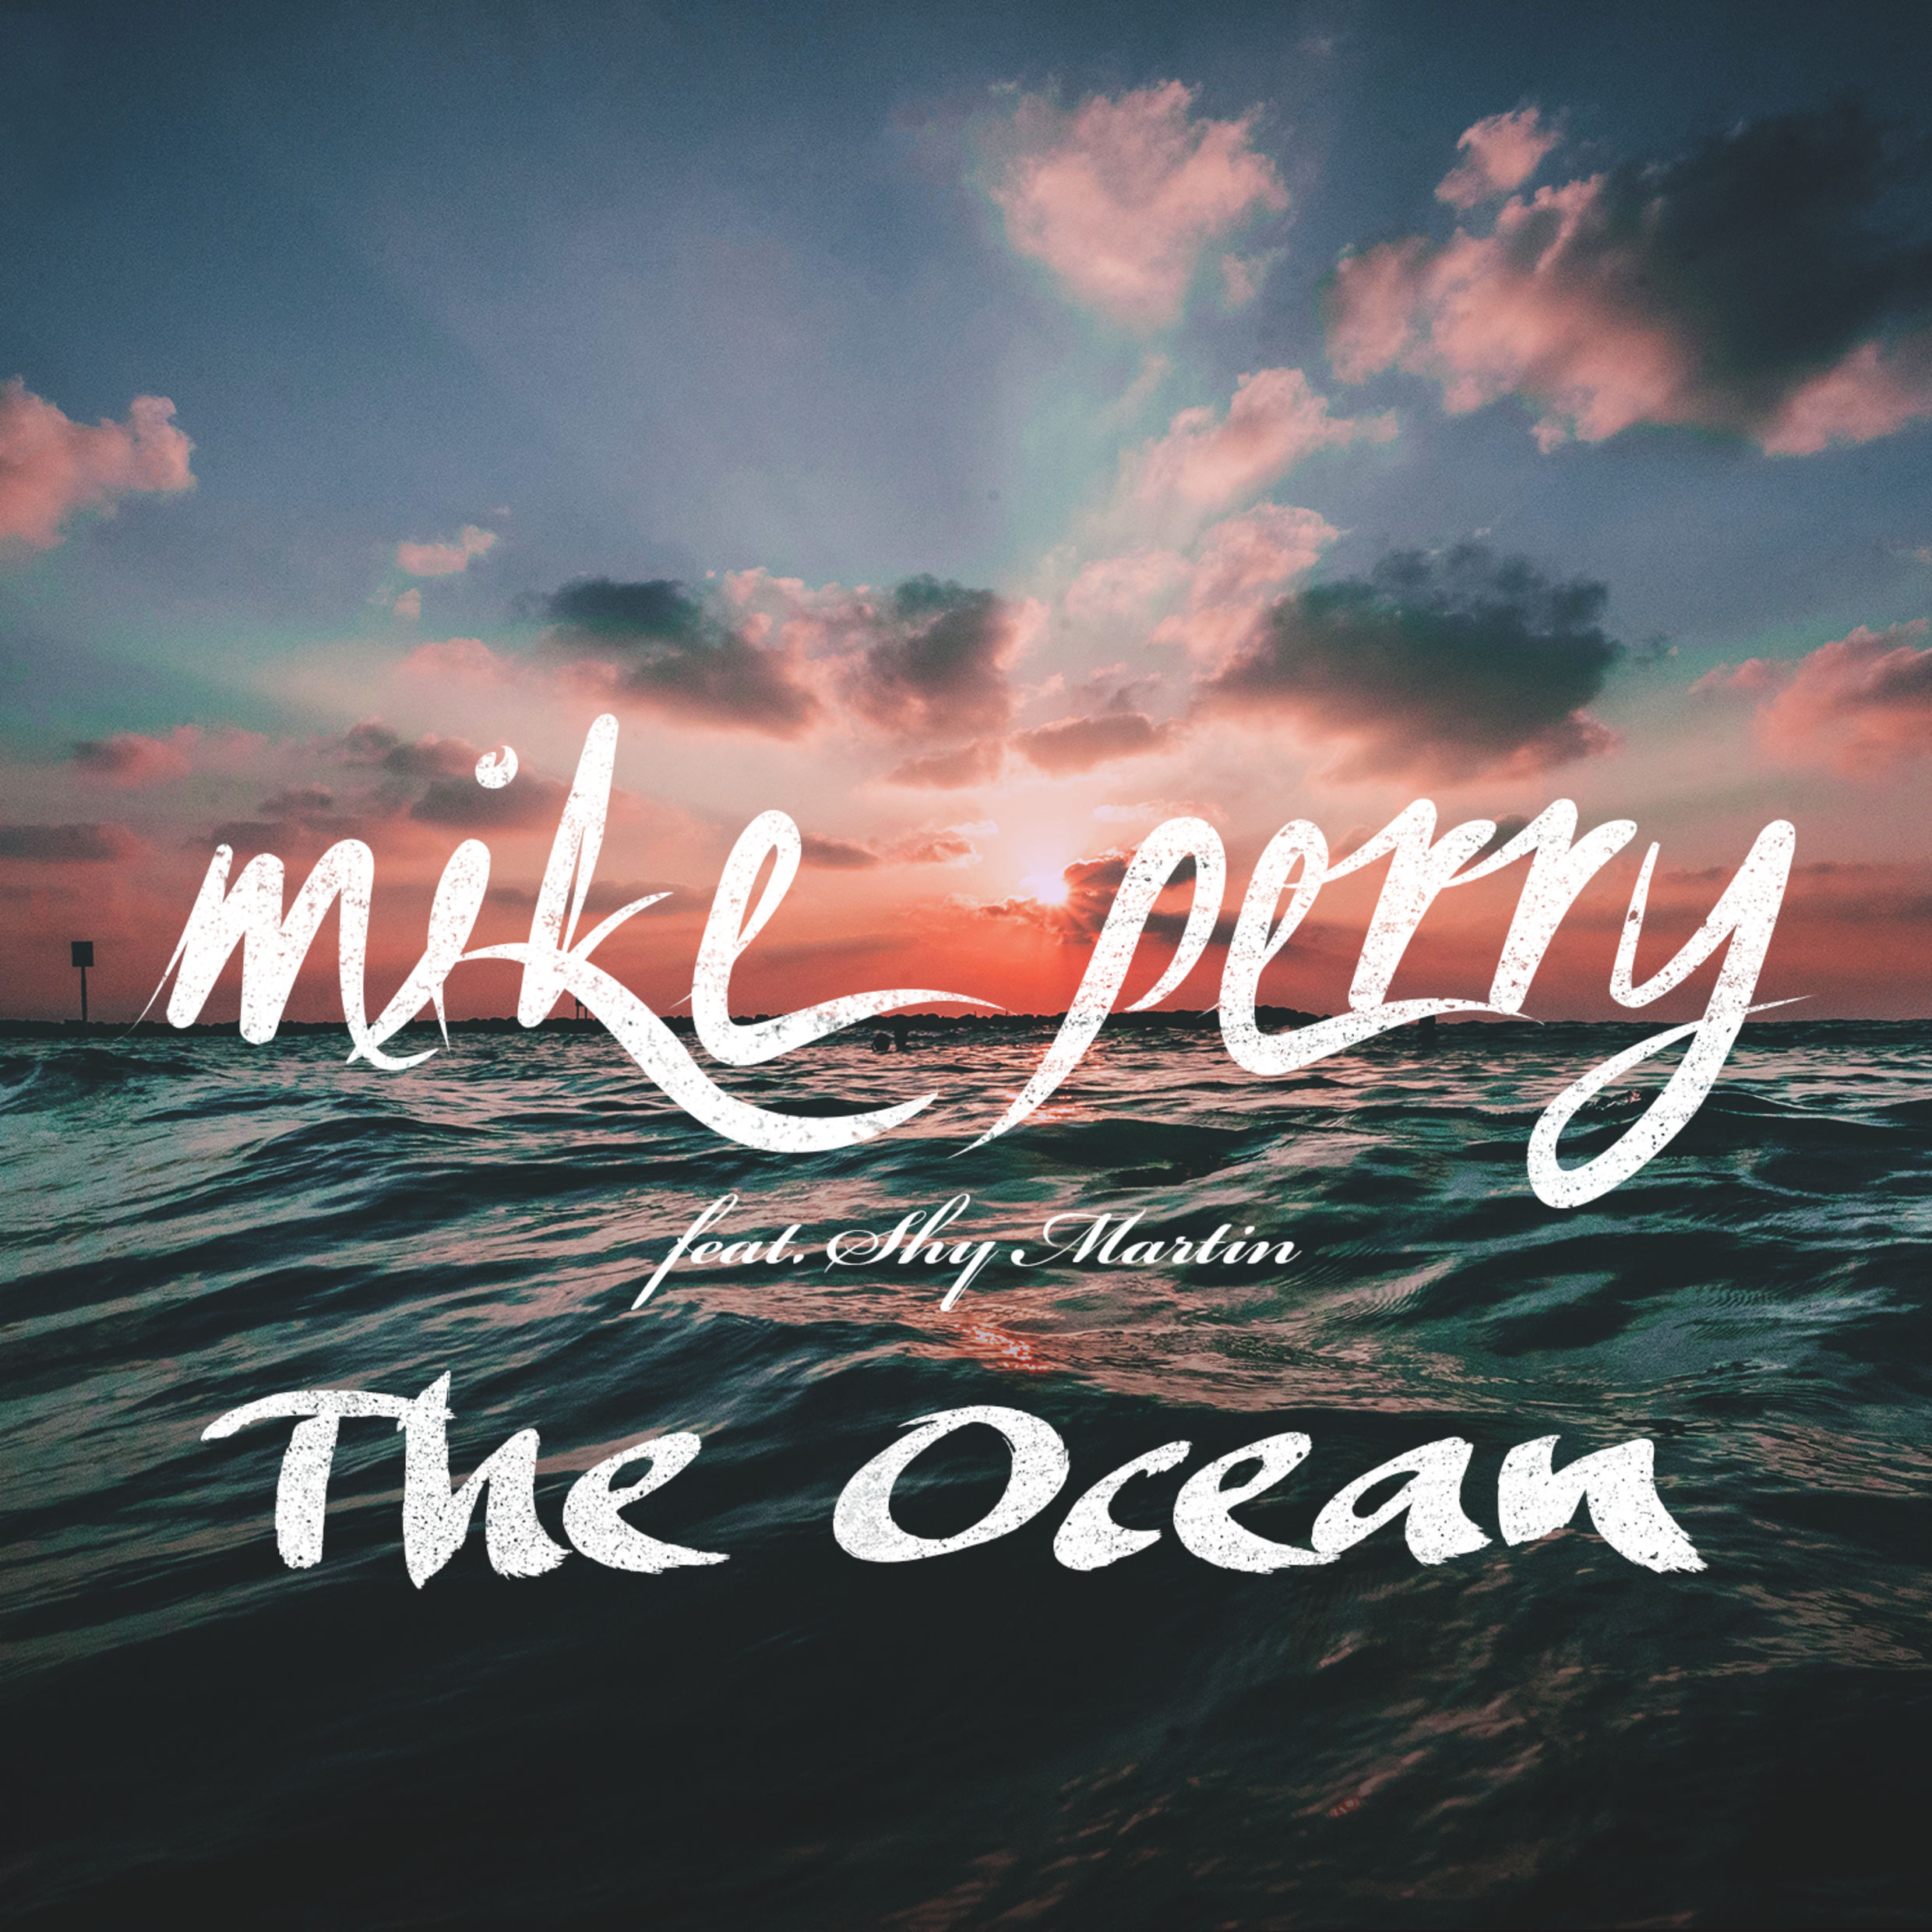 Mike perry the ocean 2016